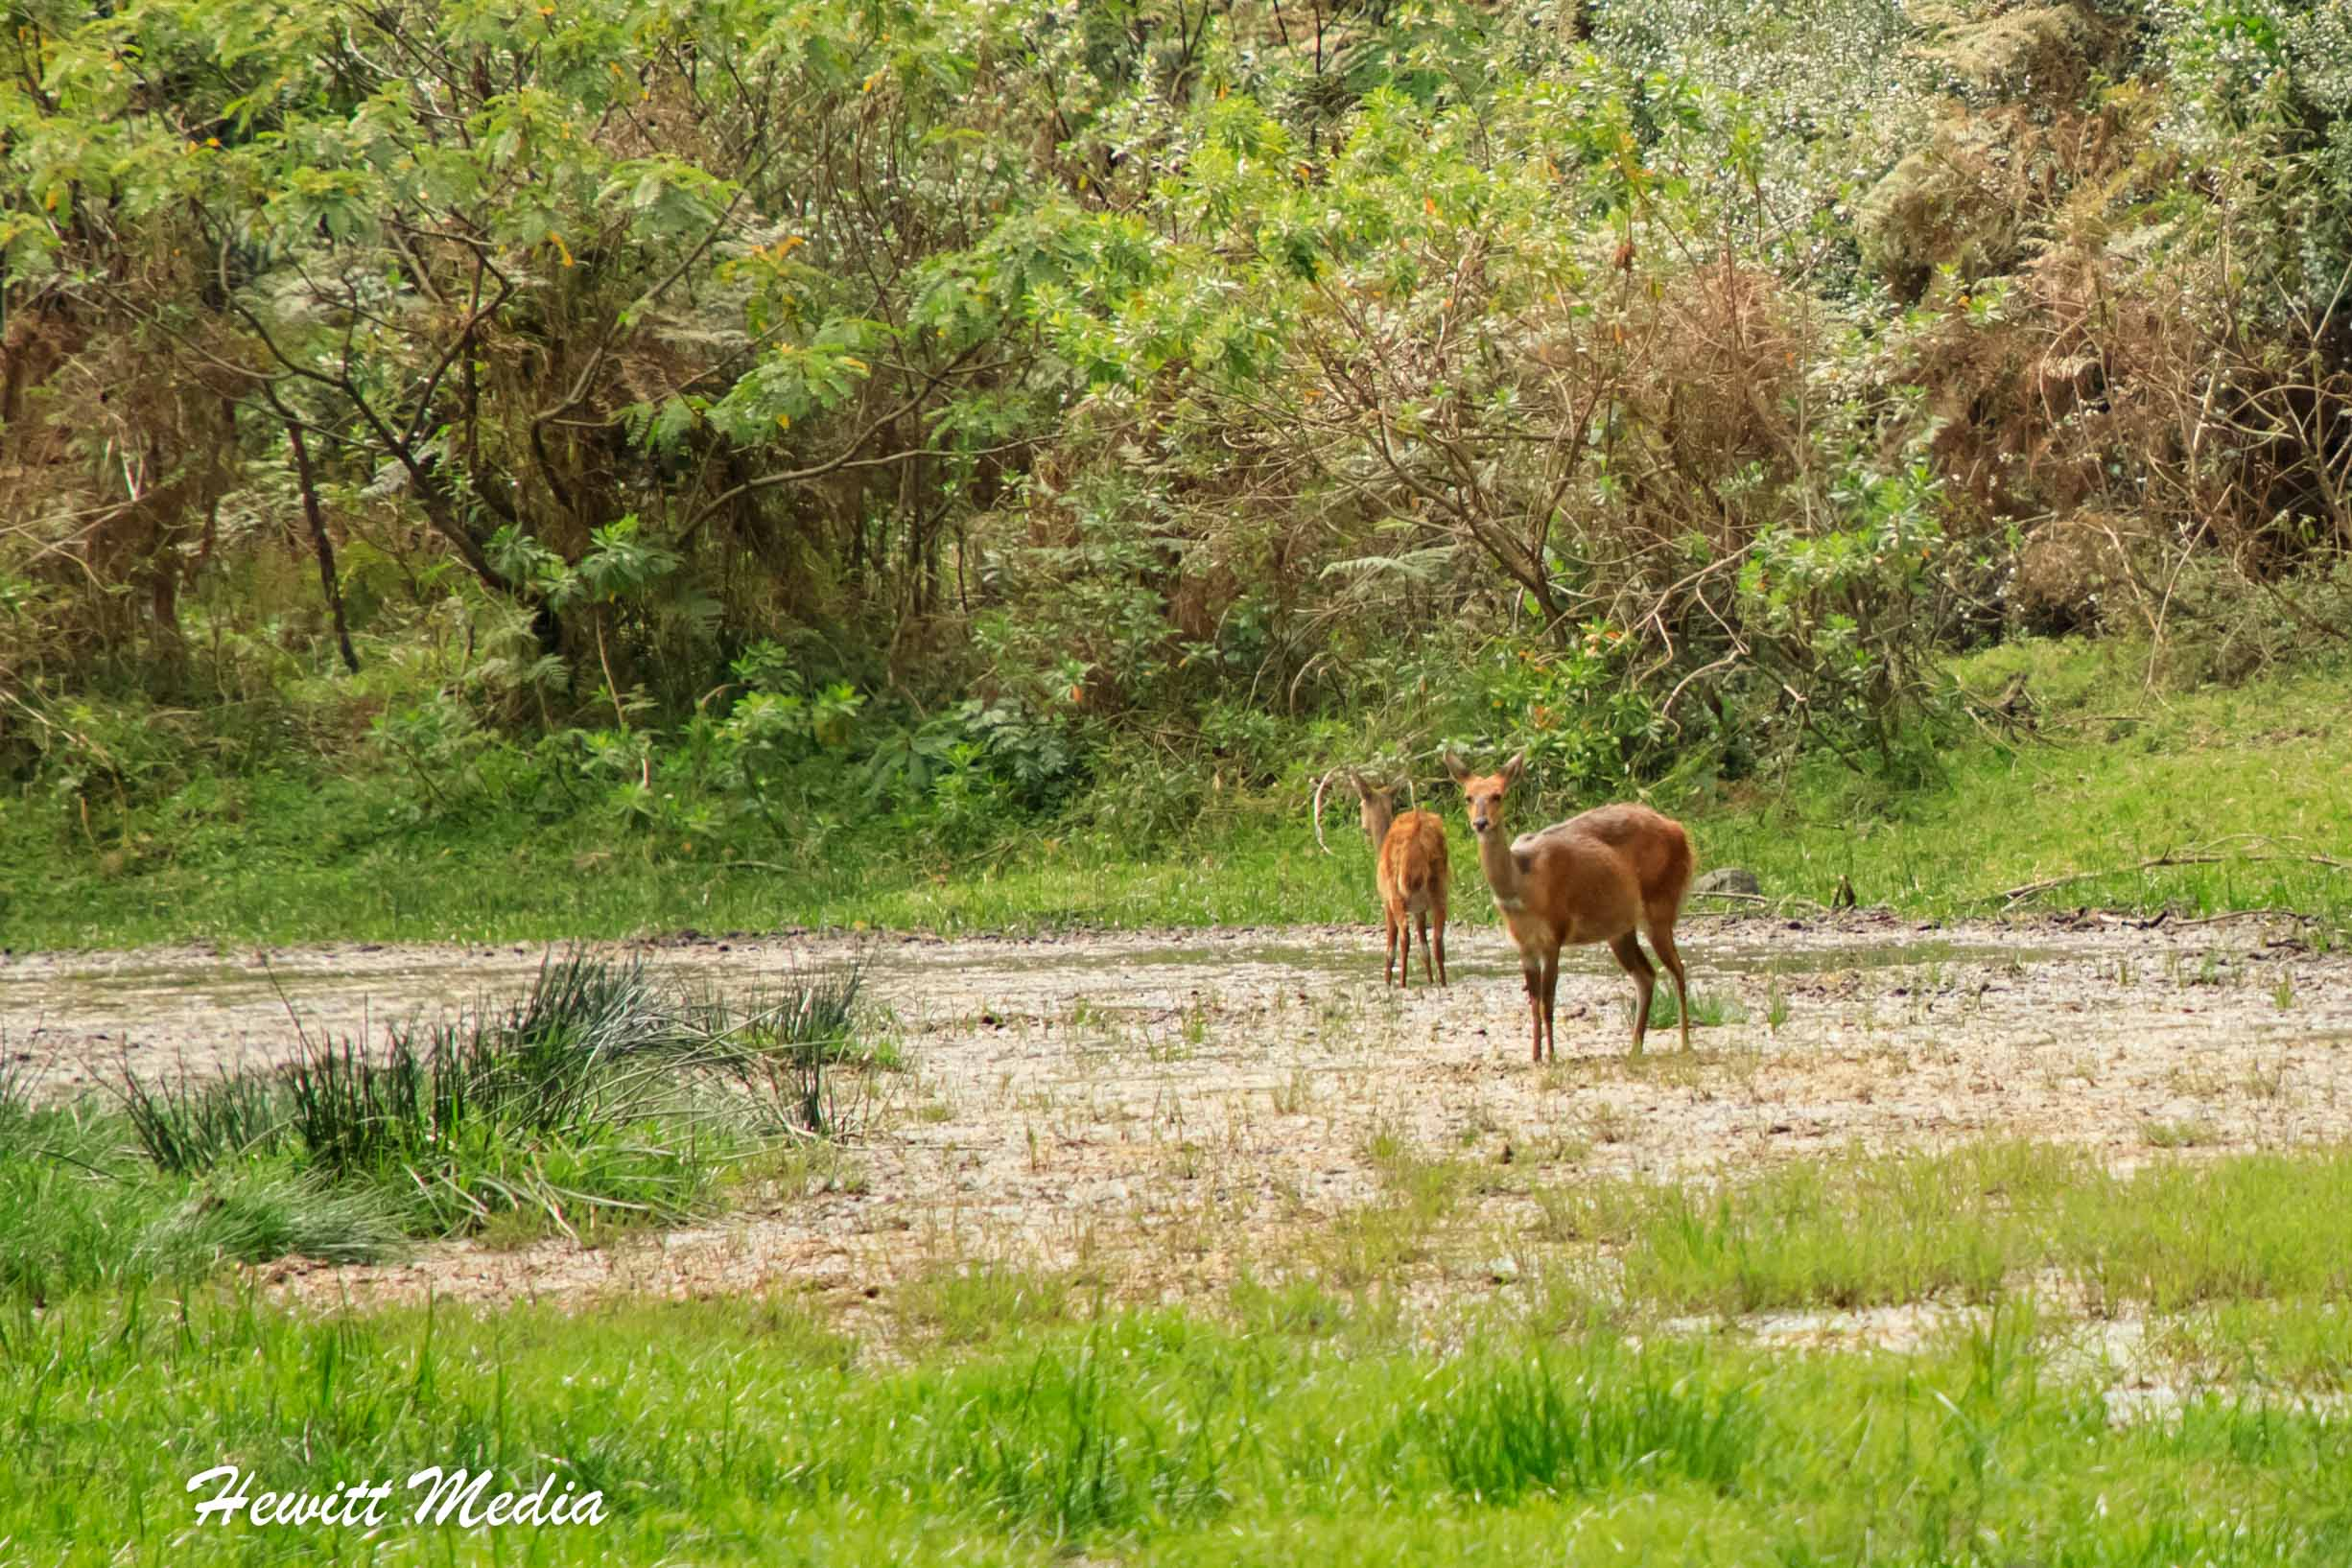 Wildlife is plentiful in Arusha National Park